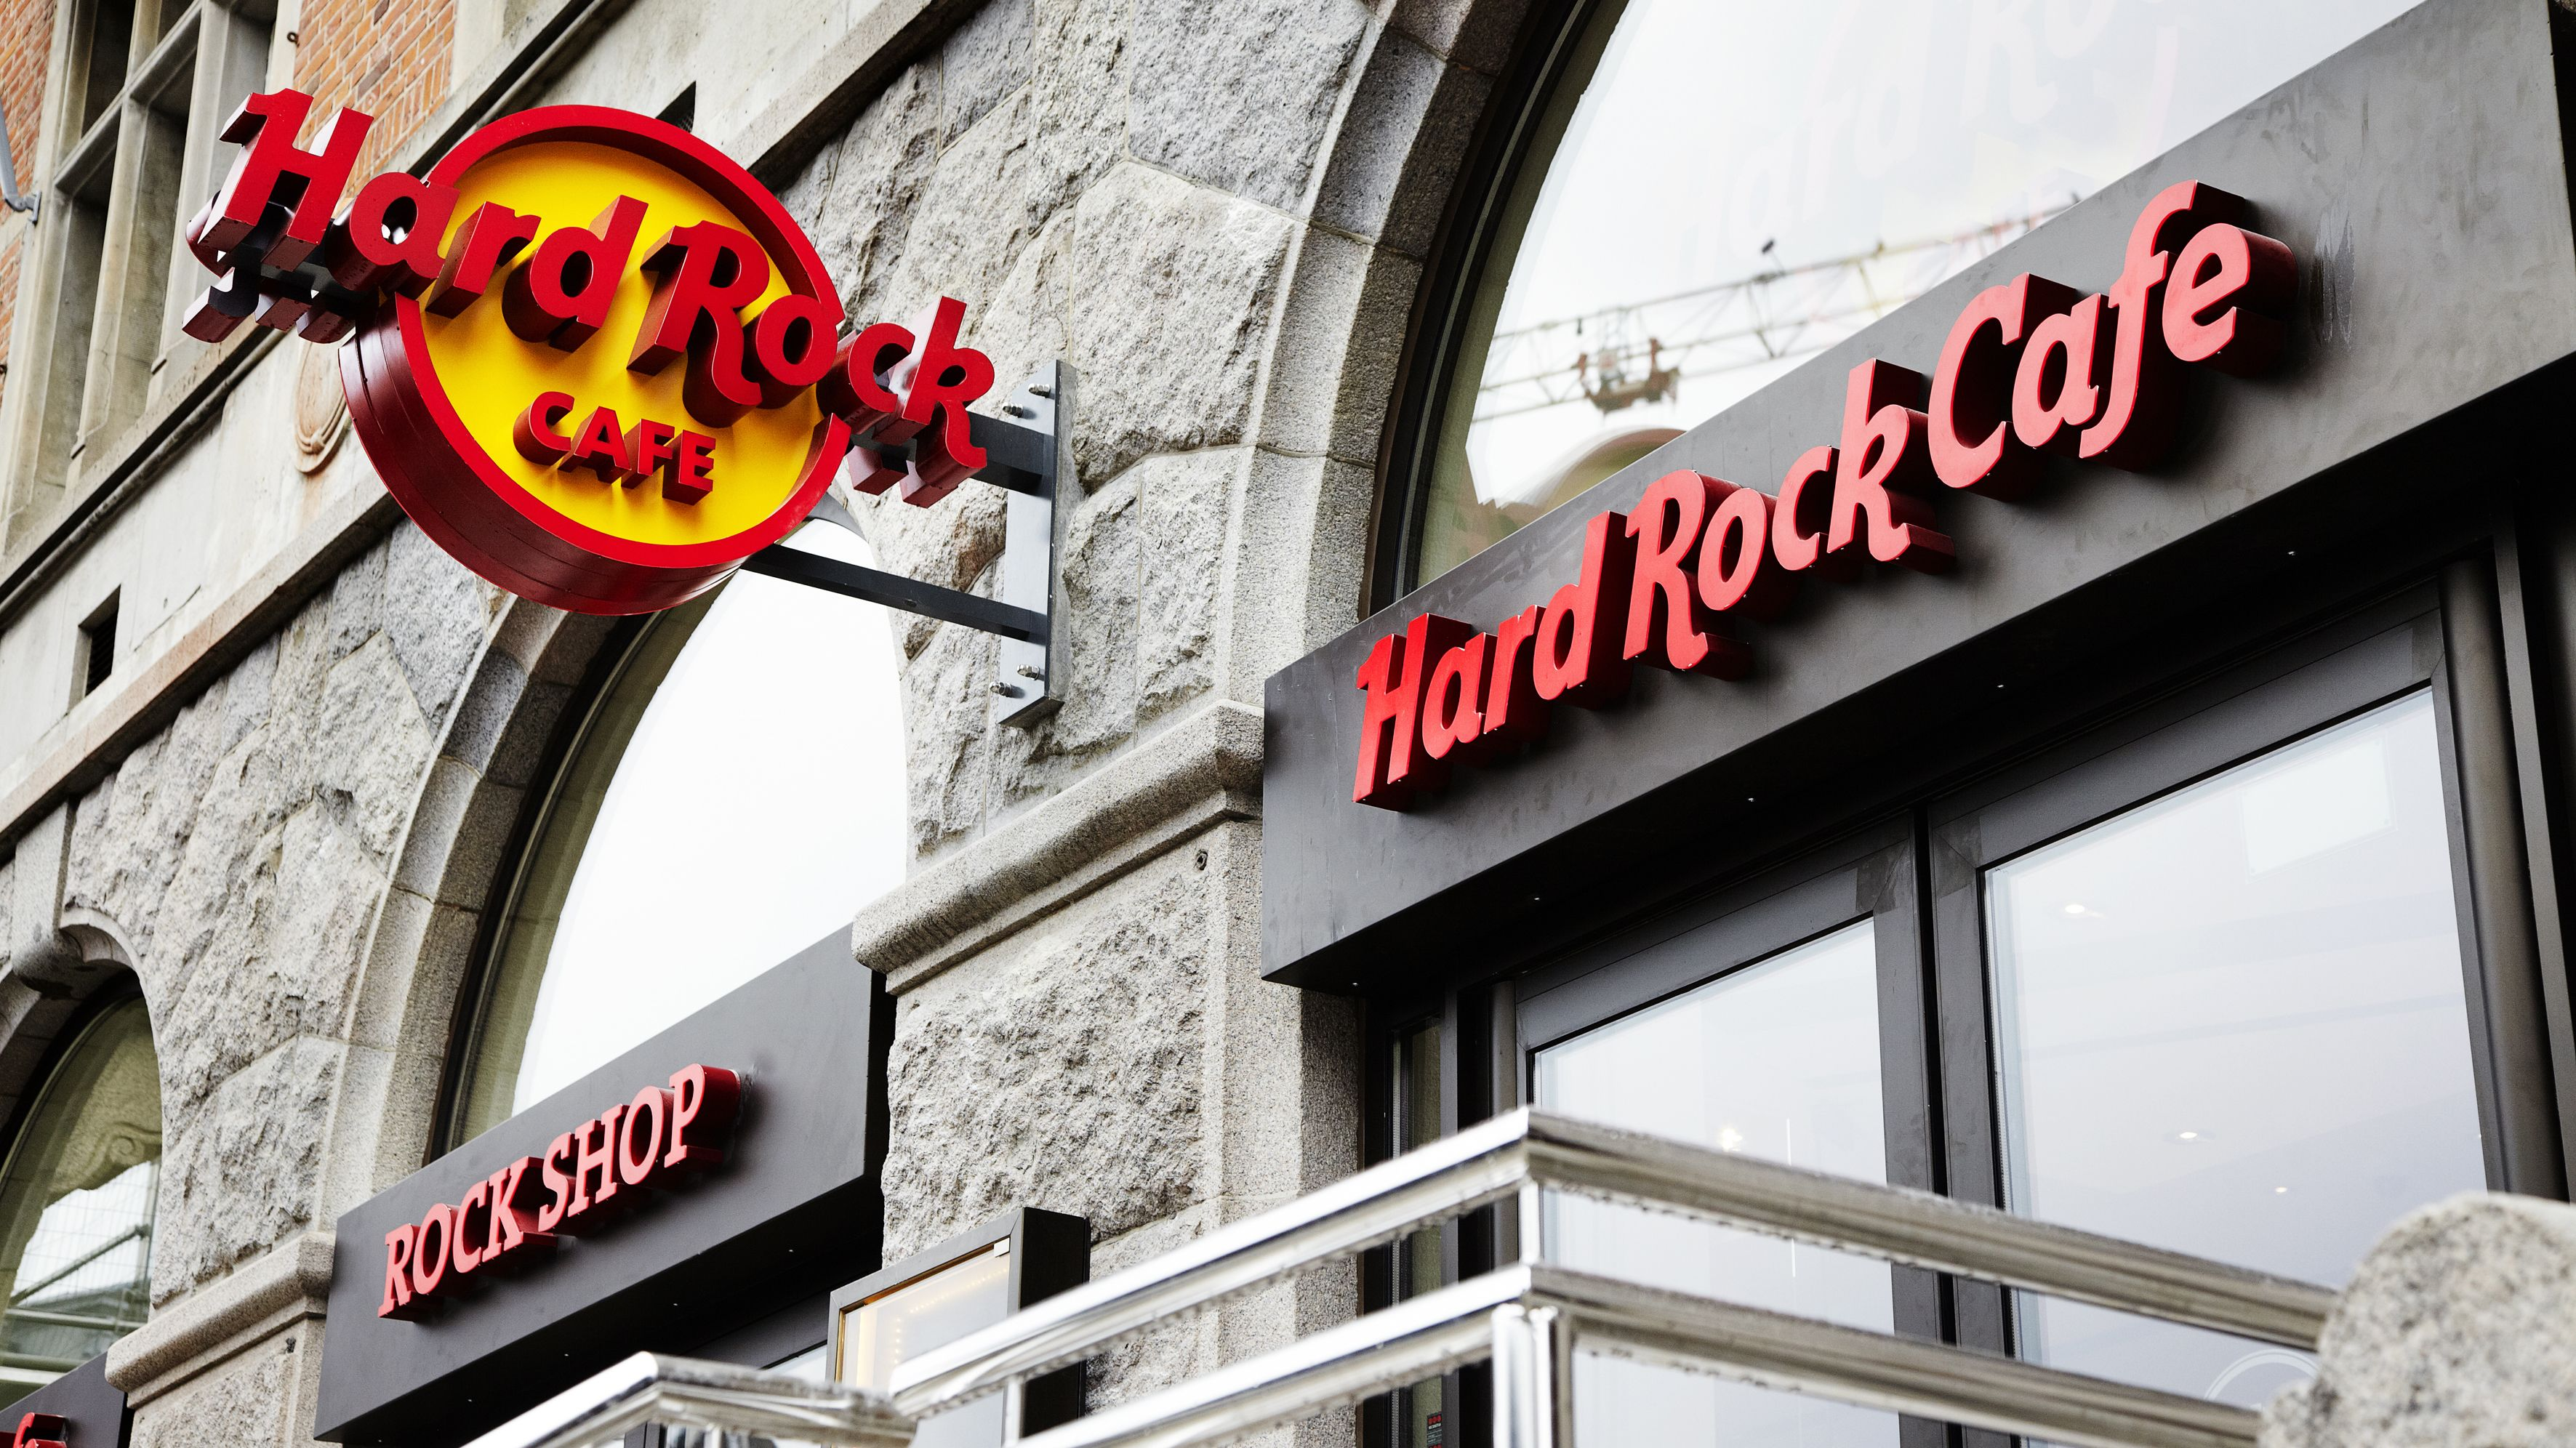 The entrance to the Hard Rock Cafe in Copenhagen